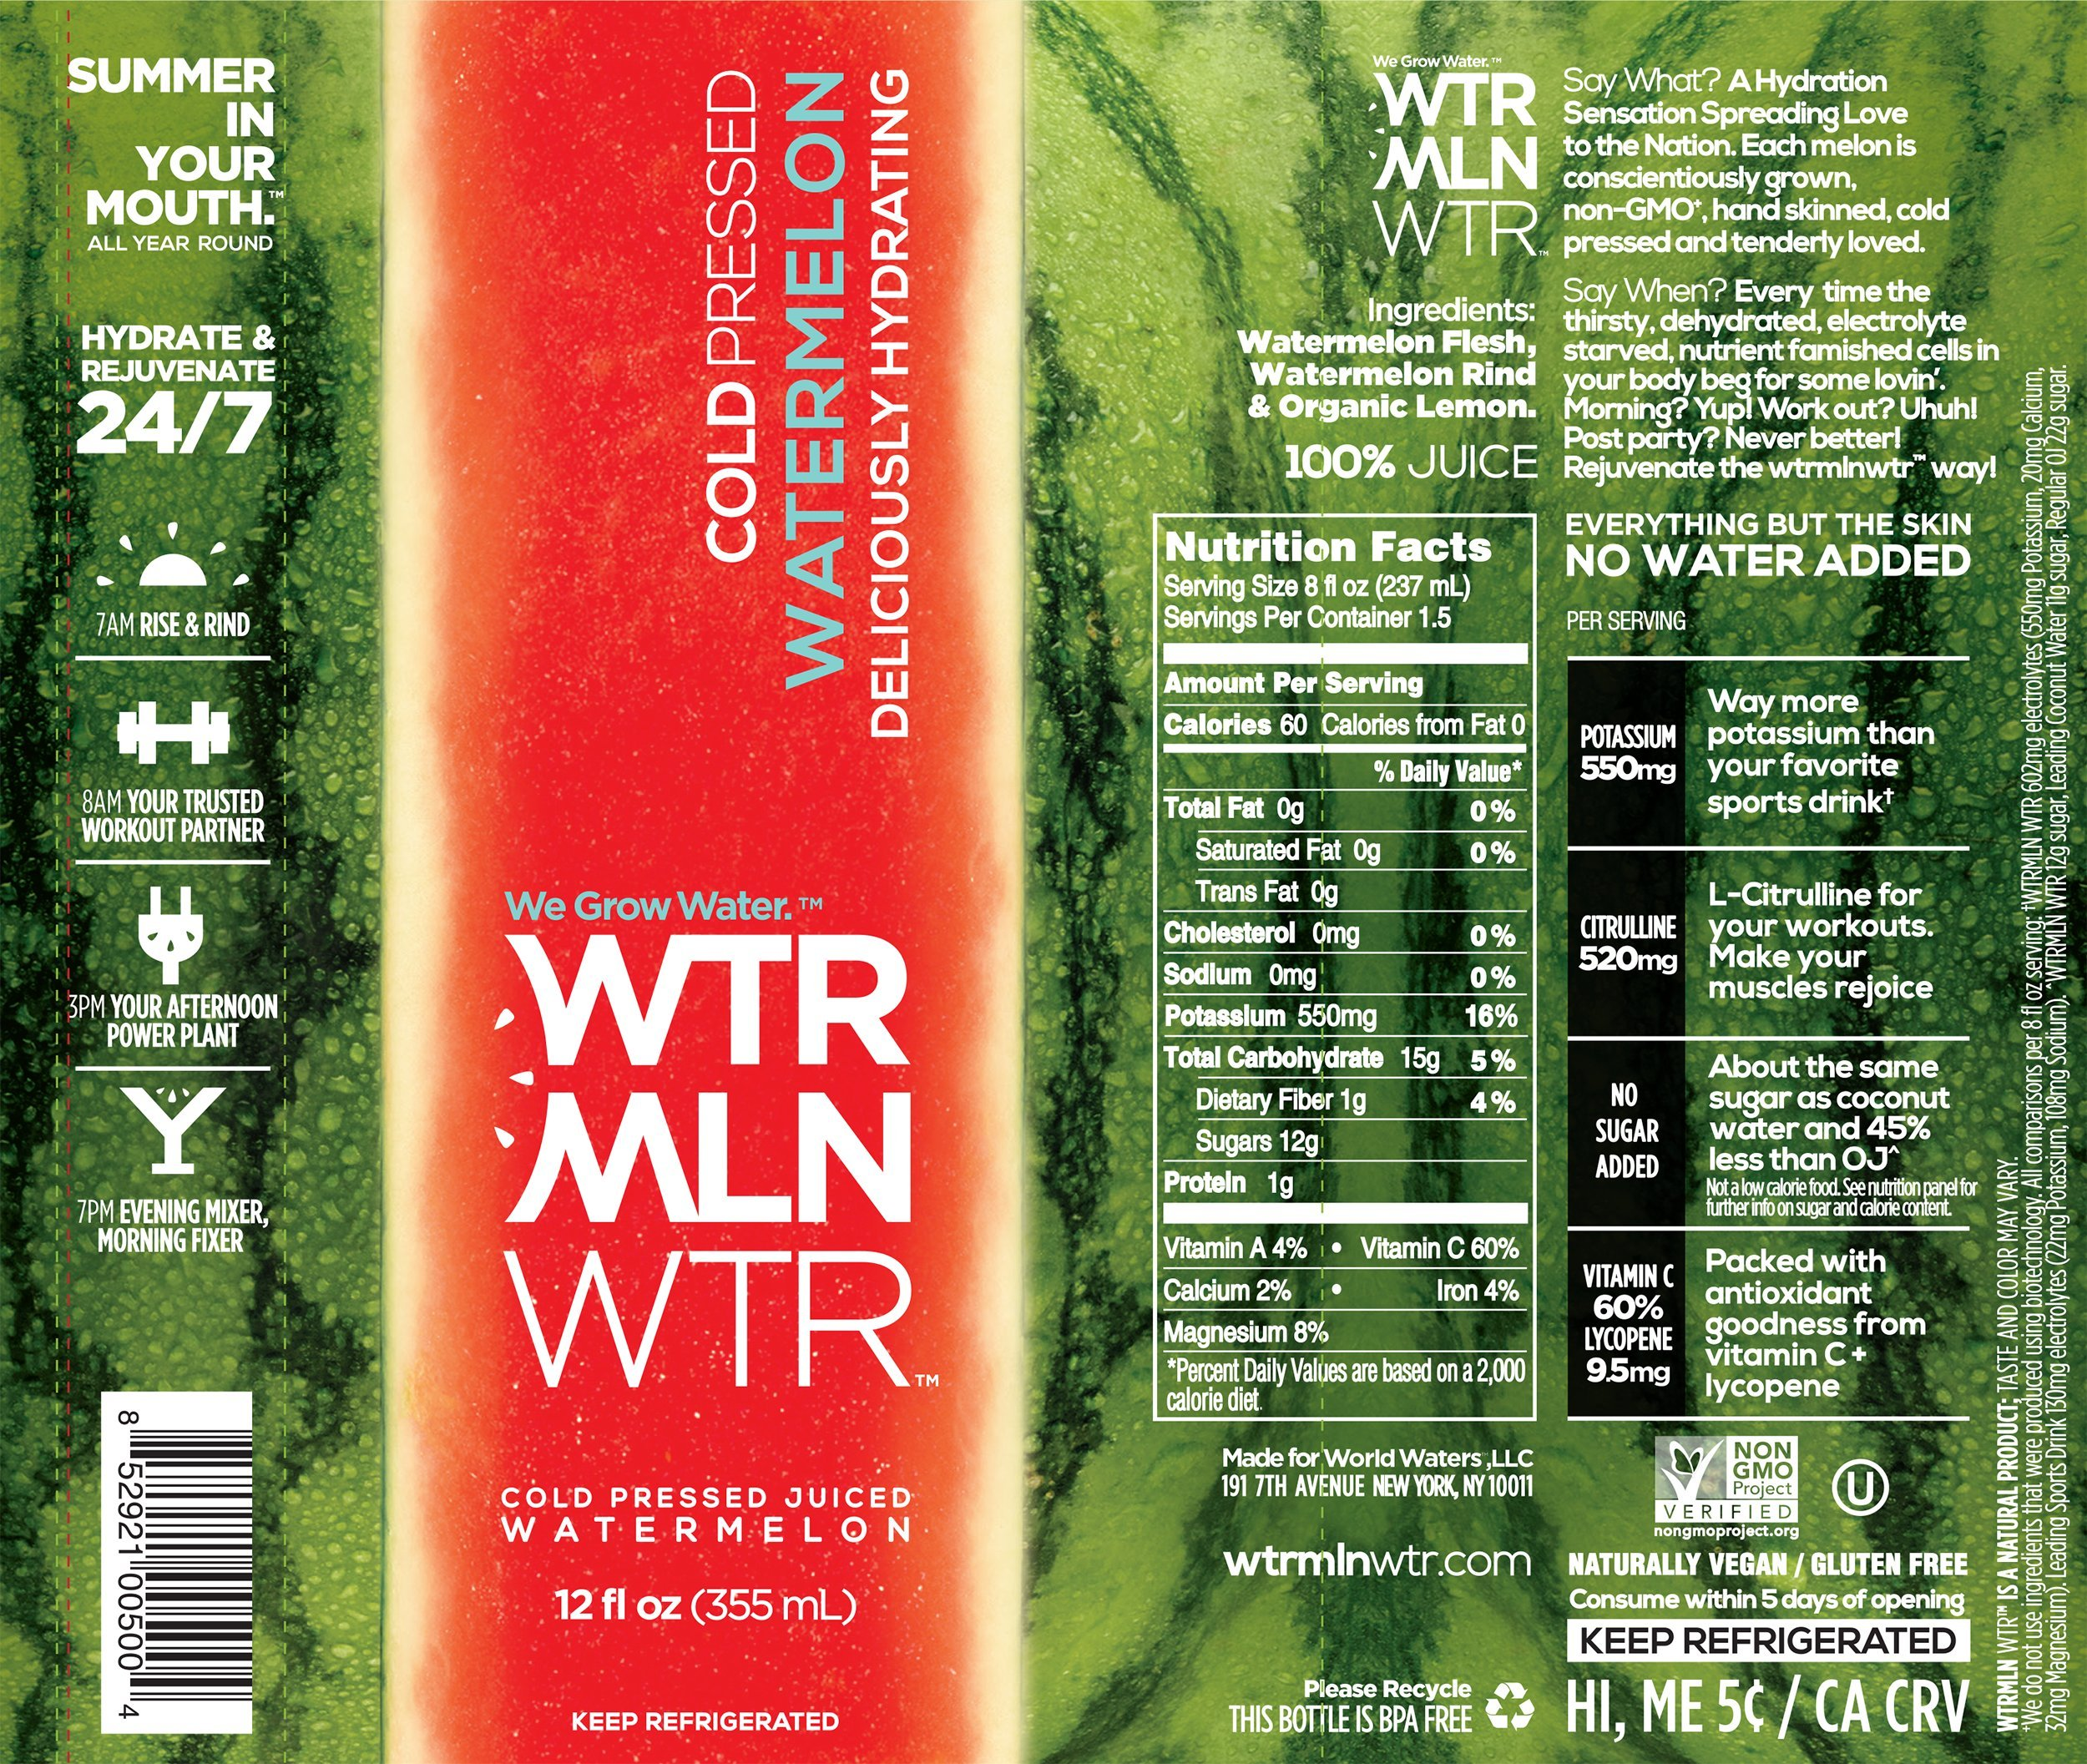 Cold Pressed Watermelon Juice (WTRMLN WTR) - Deliciously Hydrating 100% Fresh Fruit Juice, Pulp-Free, Natural Electrolyte Sports Drink With No Added Sugar or Water, 12 Pack, 12 Ounce Bottles